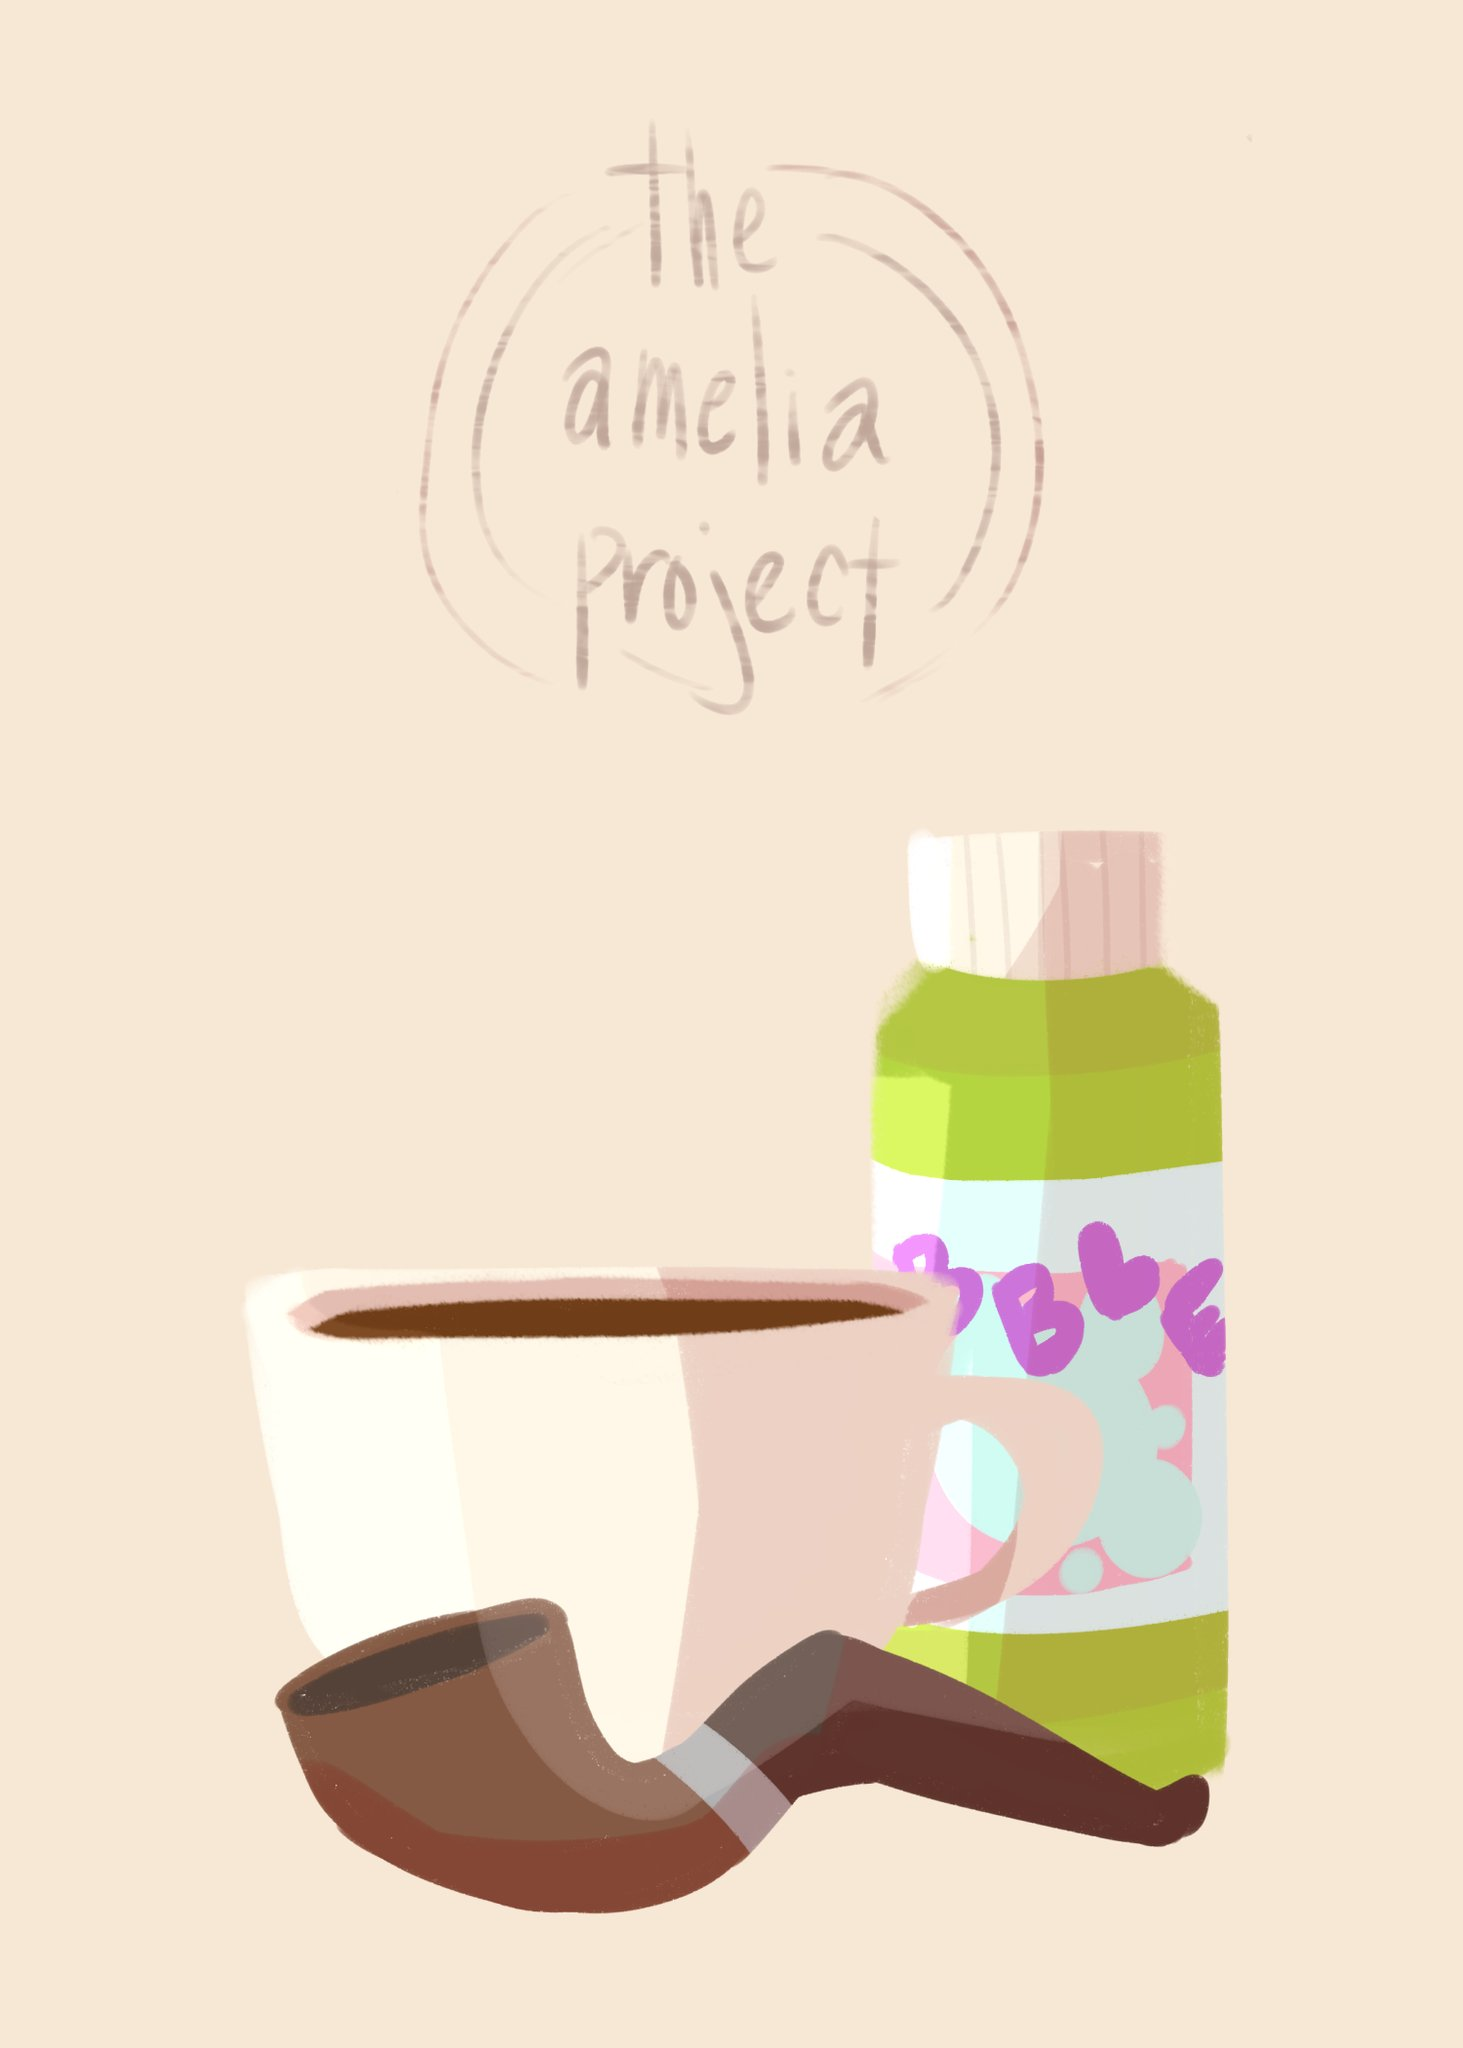 Cocoa and bubble pipe by @sameshork